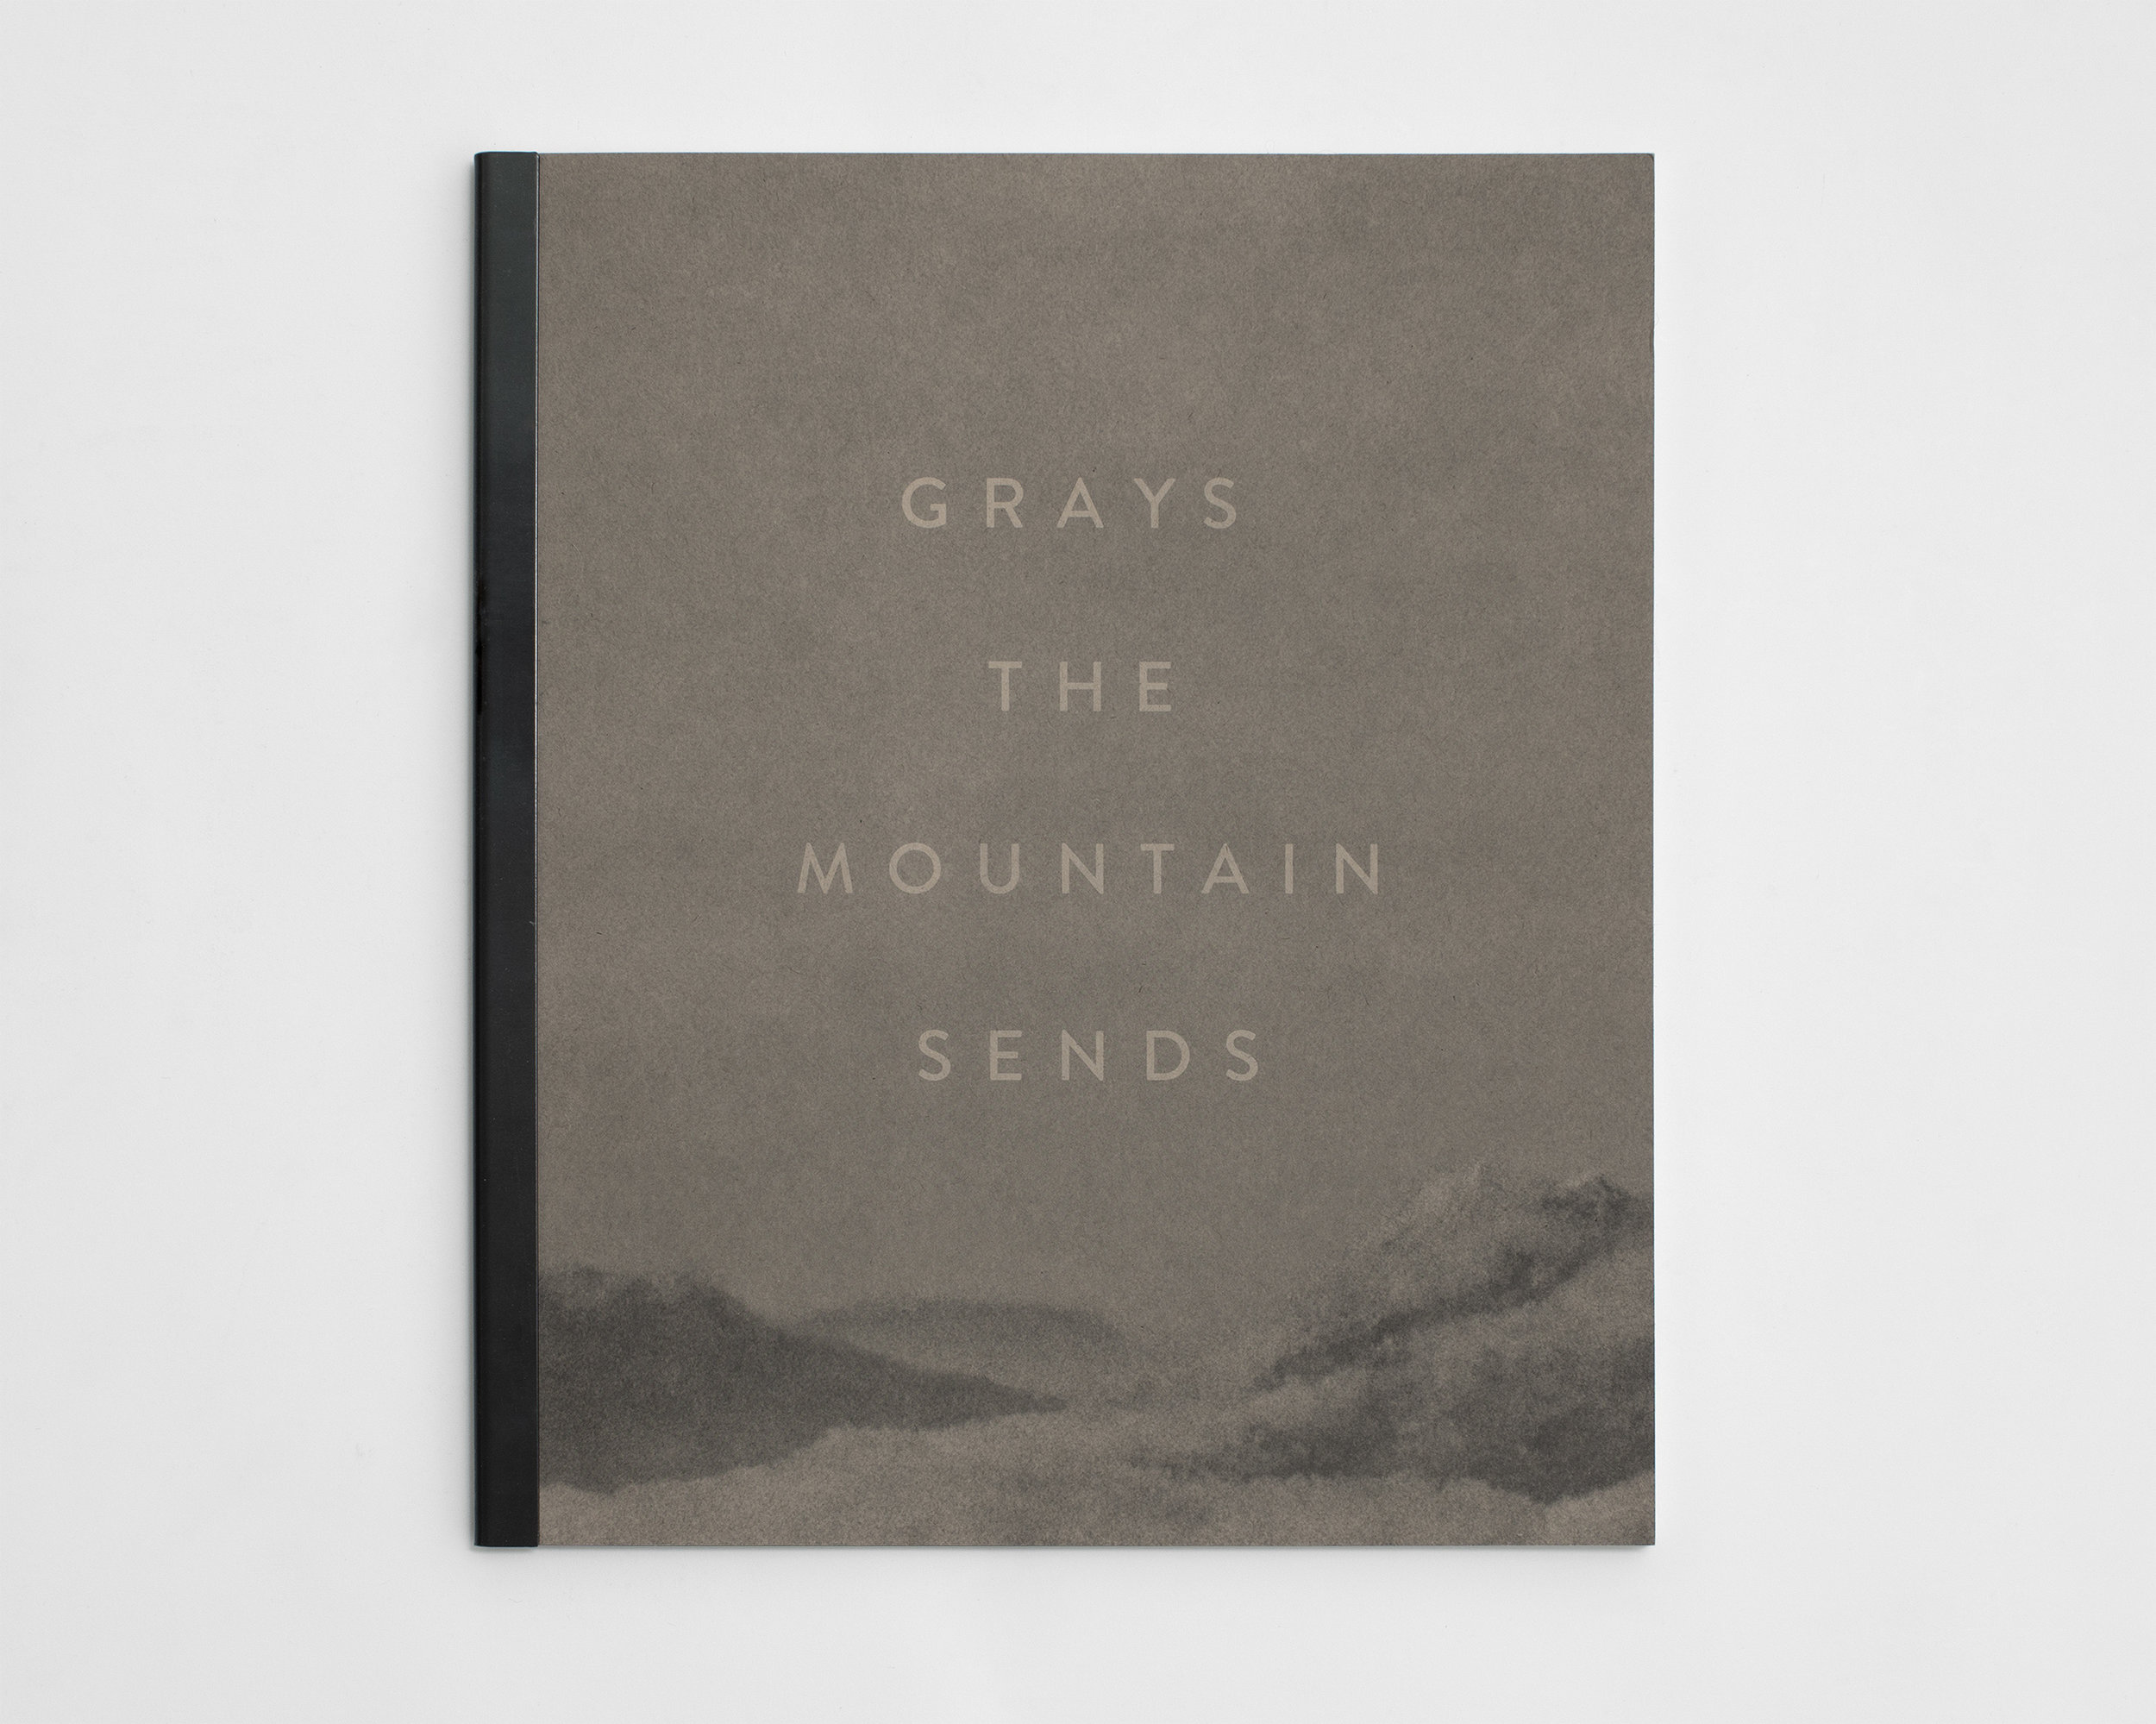 Inspired by the poetry of Richard Hugo, 'Grays the Mountain Sends' is project  that explores the lives of working people residing in small mountain towns and mining communities in the American West.